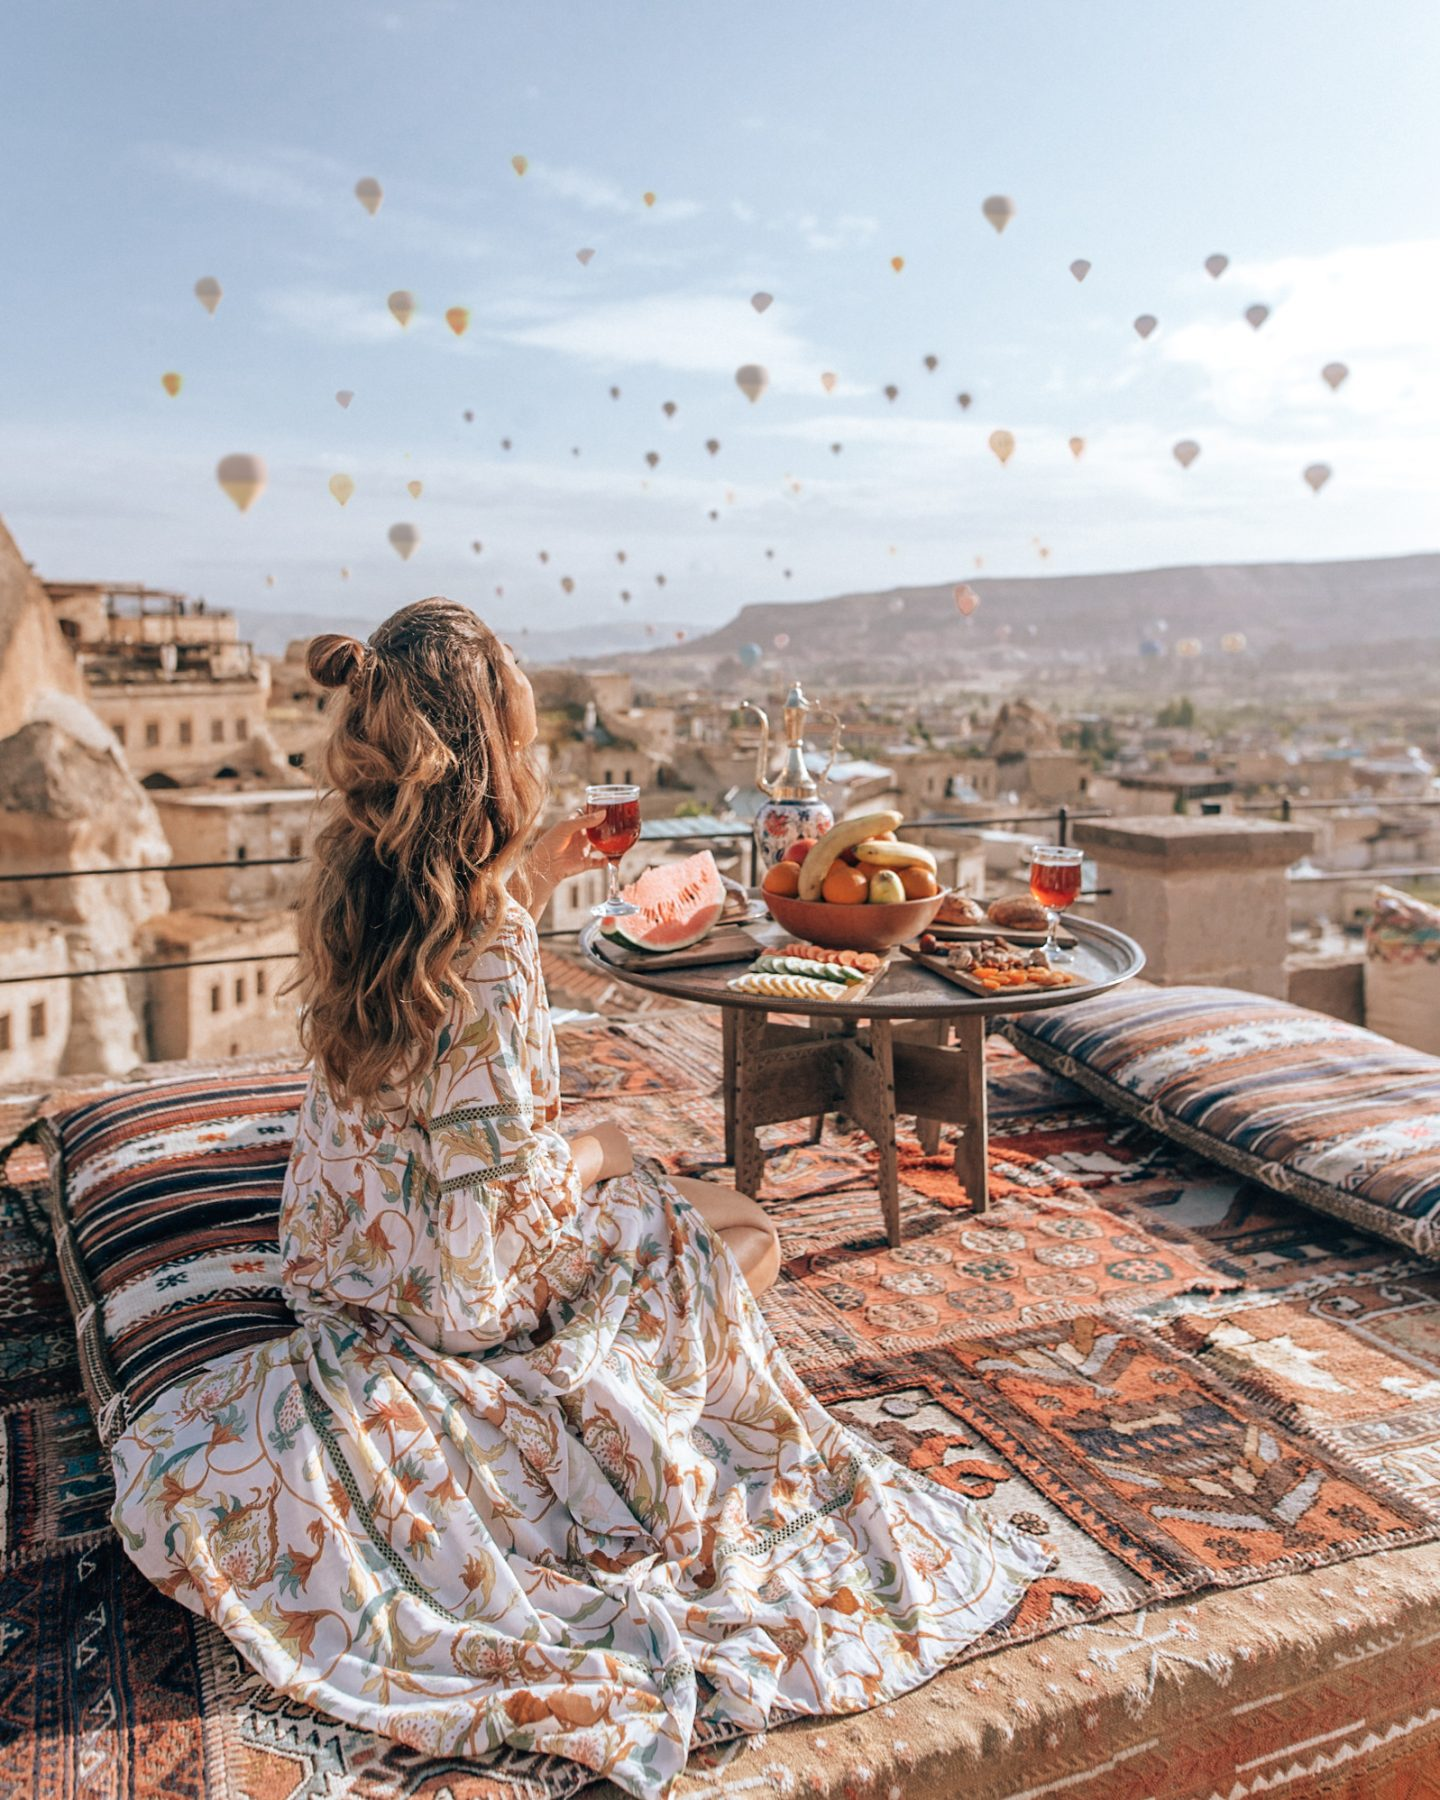 The Most Instagrammable Places in Cappadocia